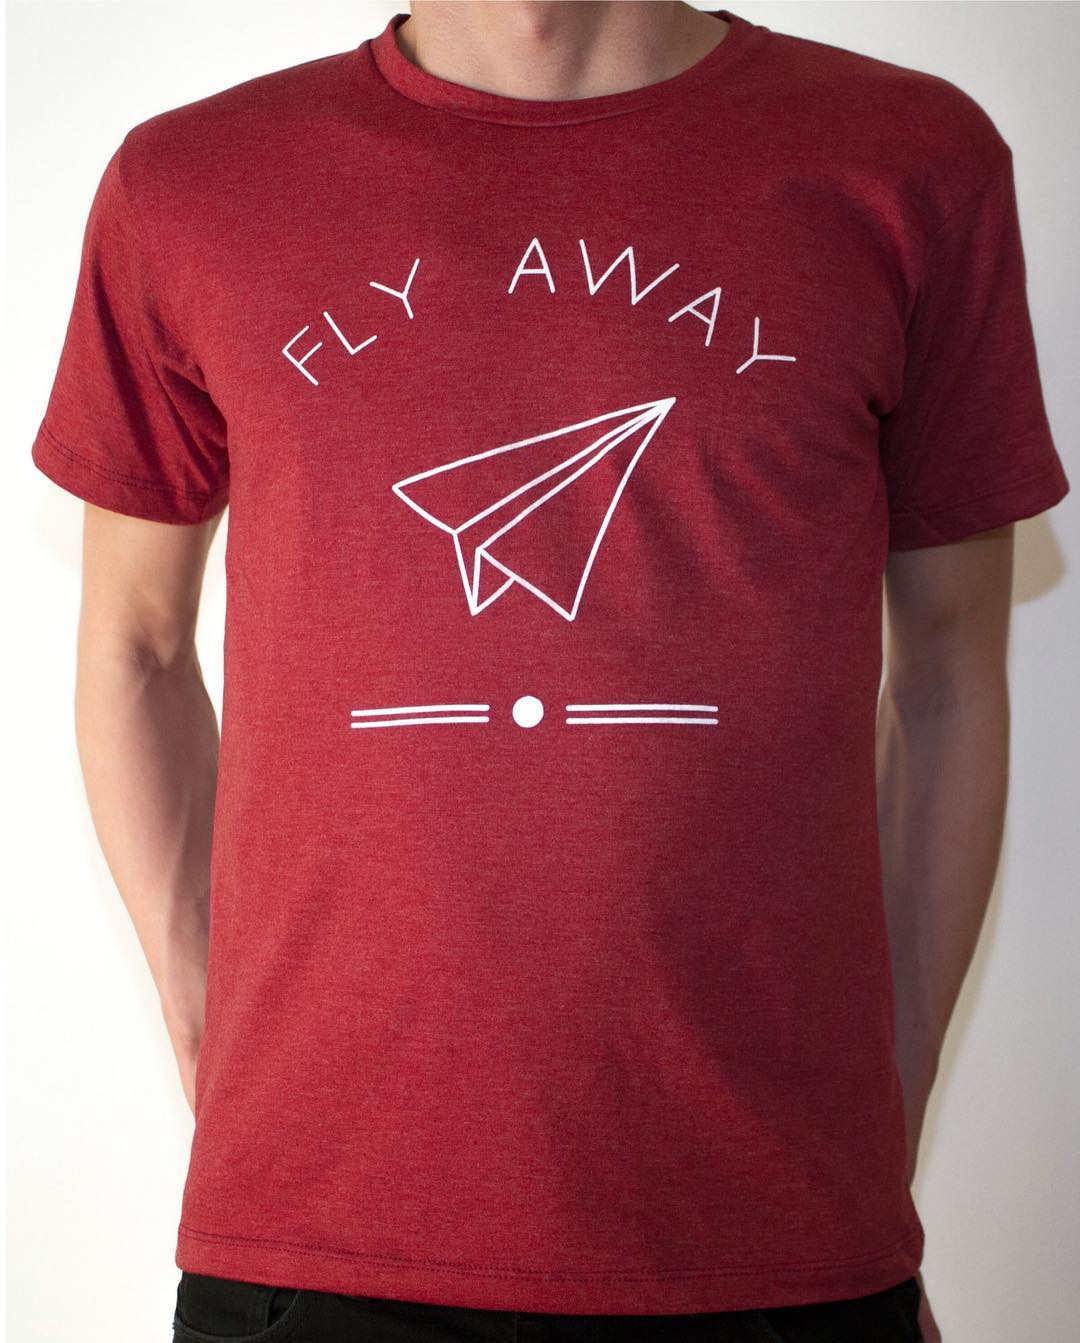 REMERA FLY AWAY BORDEAUX  PROMO LANZAMIENTO $299 SHOP ONLINE  www.somosborna.com